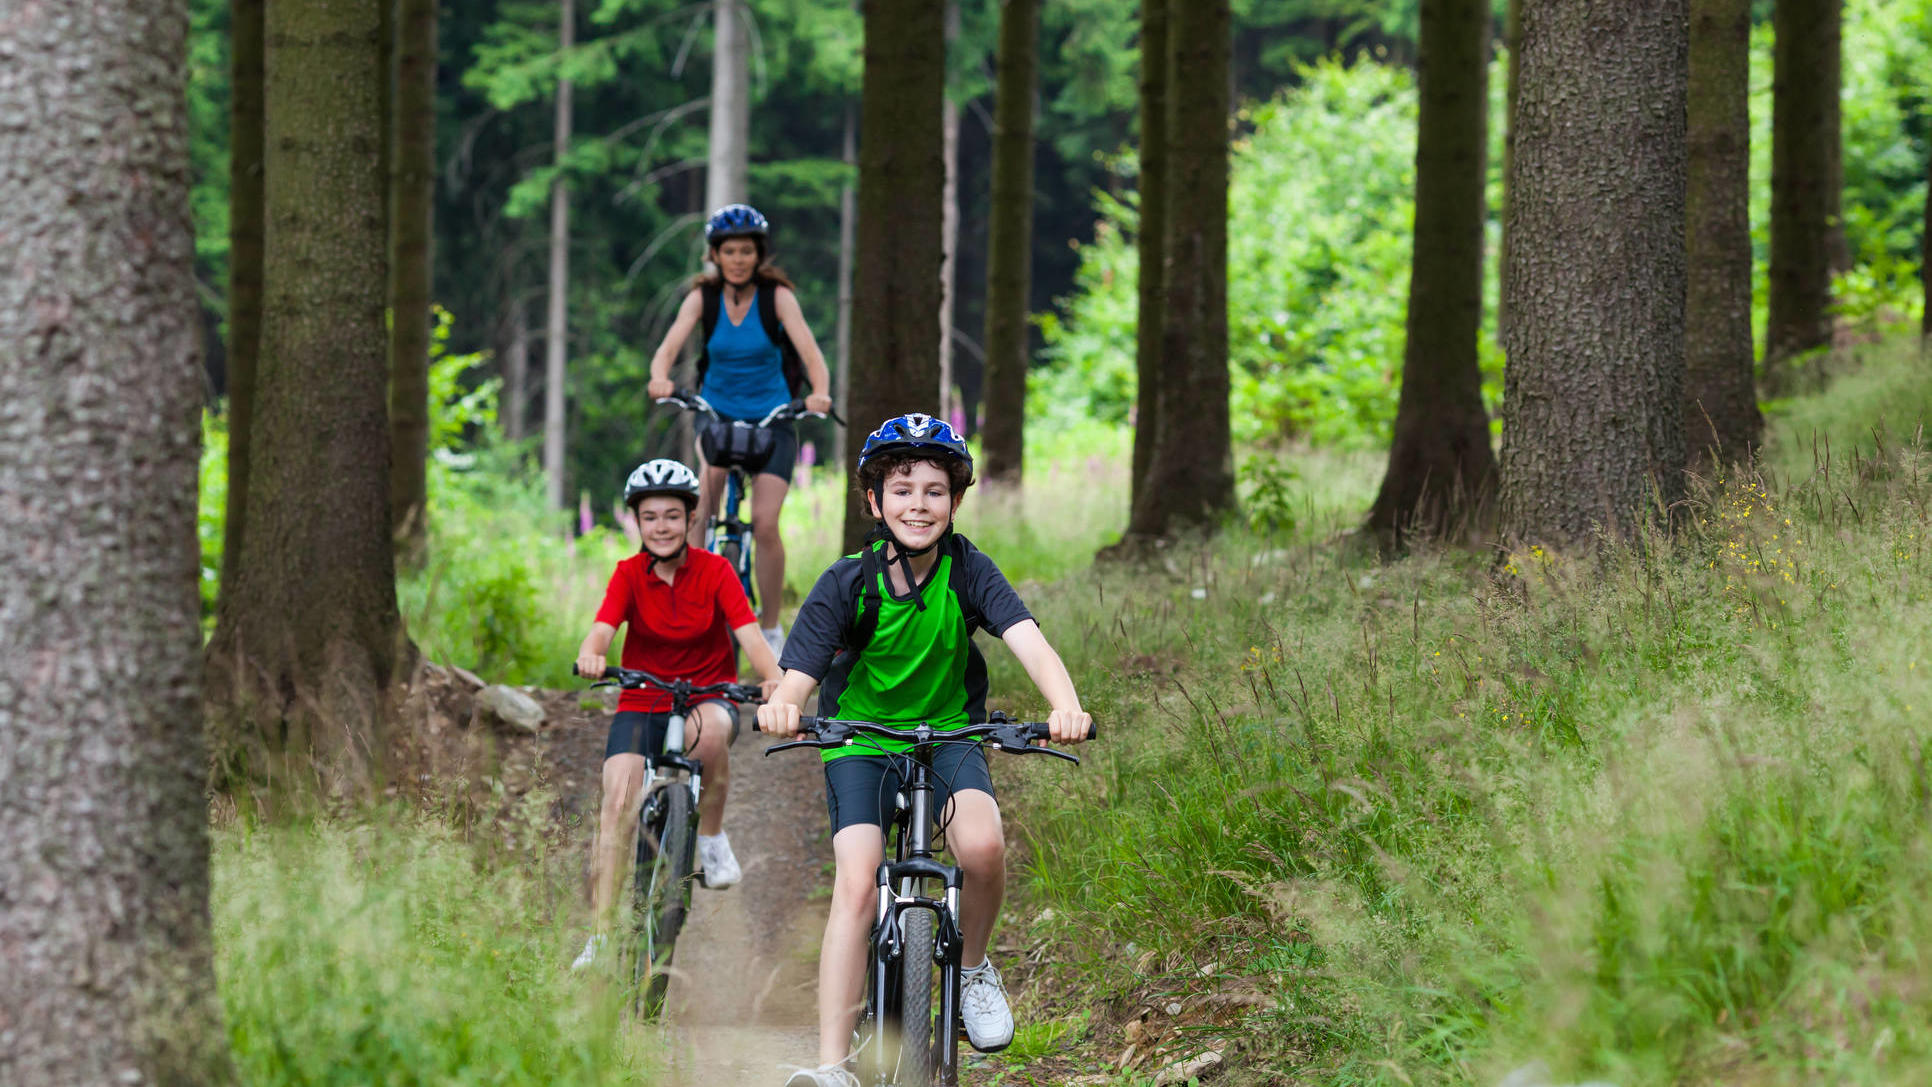 a woman and her children riding bikes in a forest